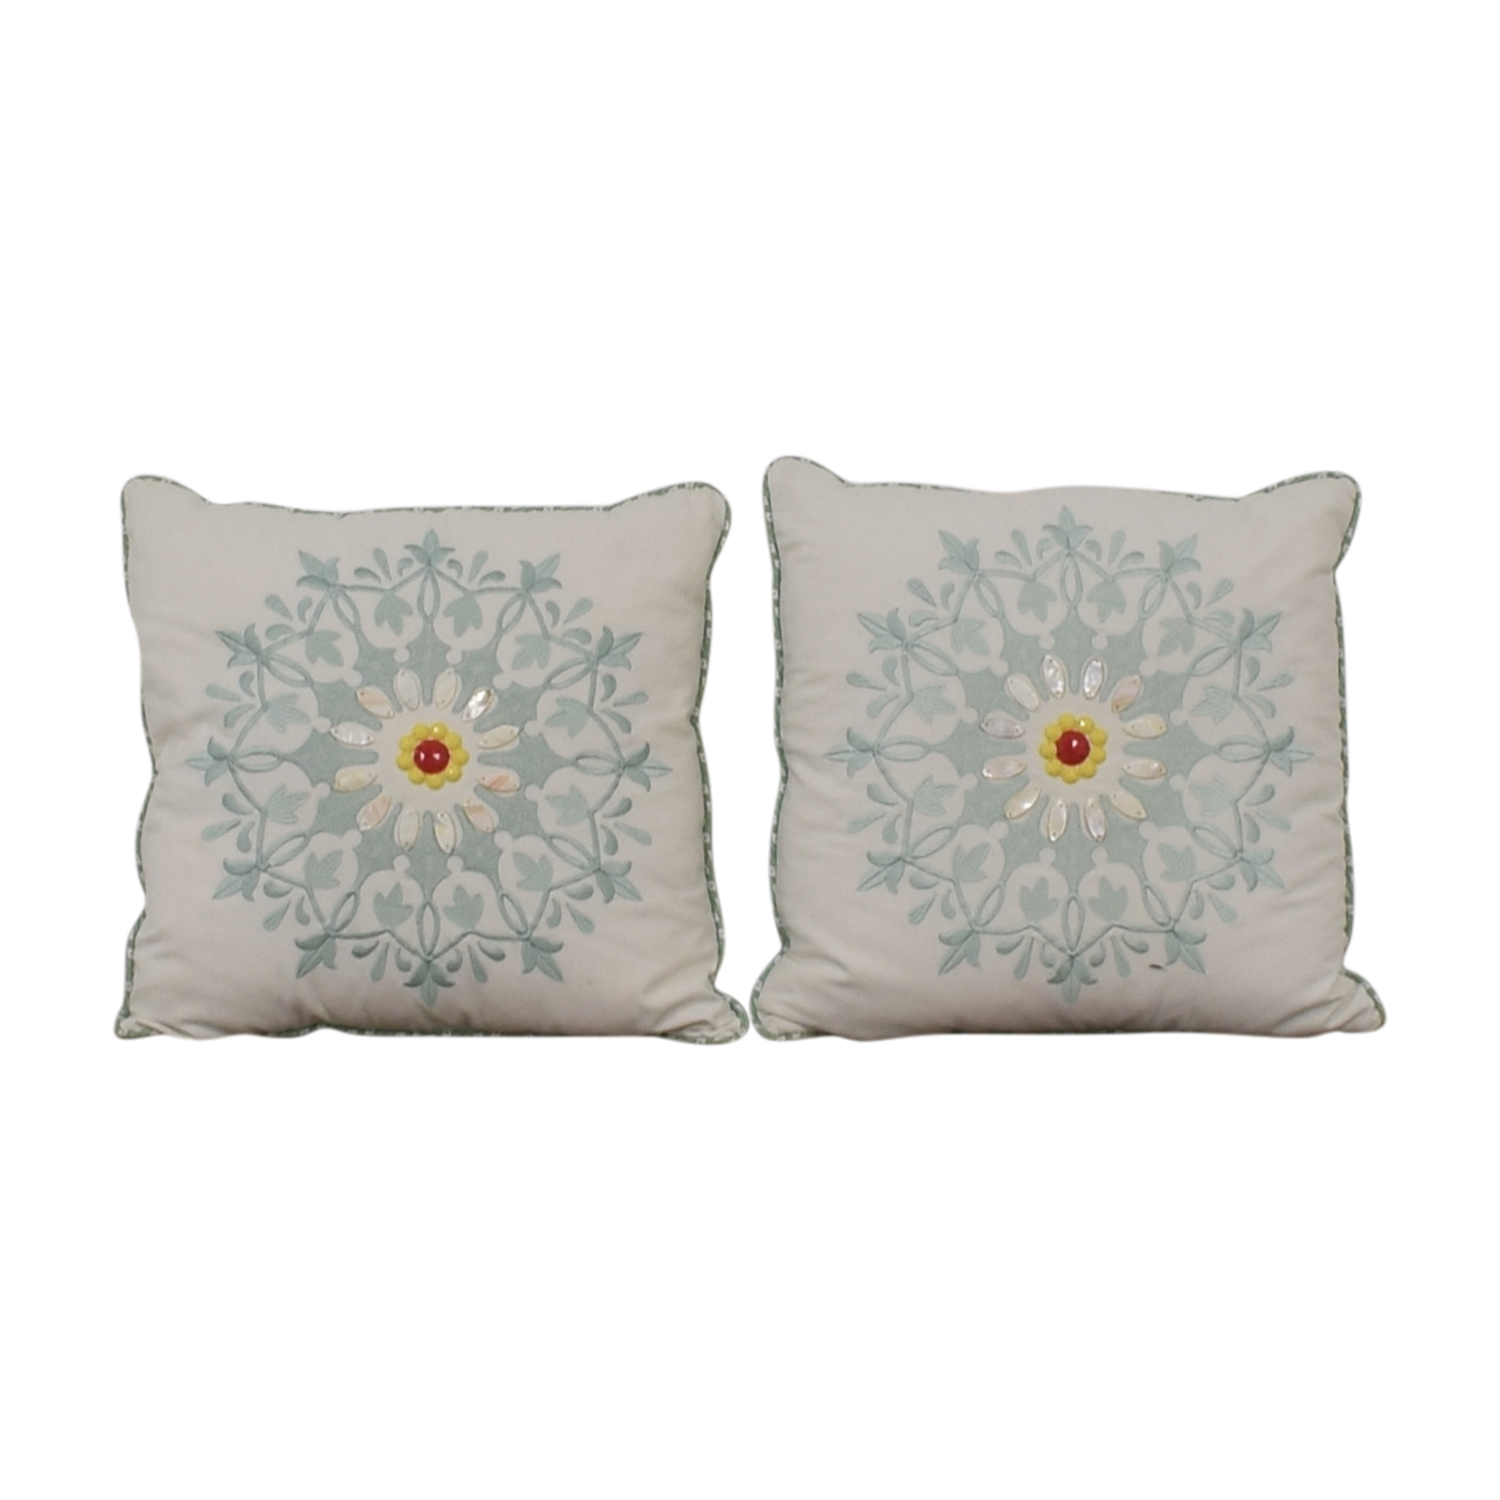 Macy's Macy's White and Blue Floral Accent Pillows white